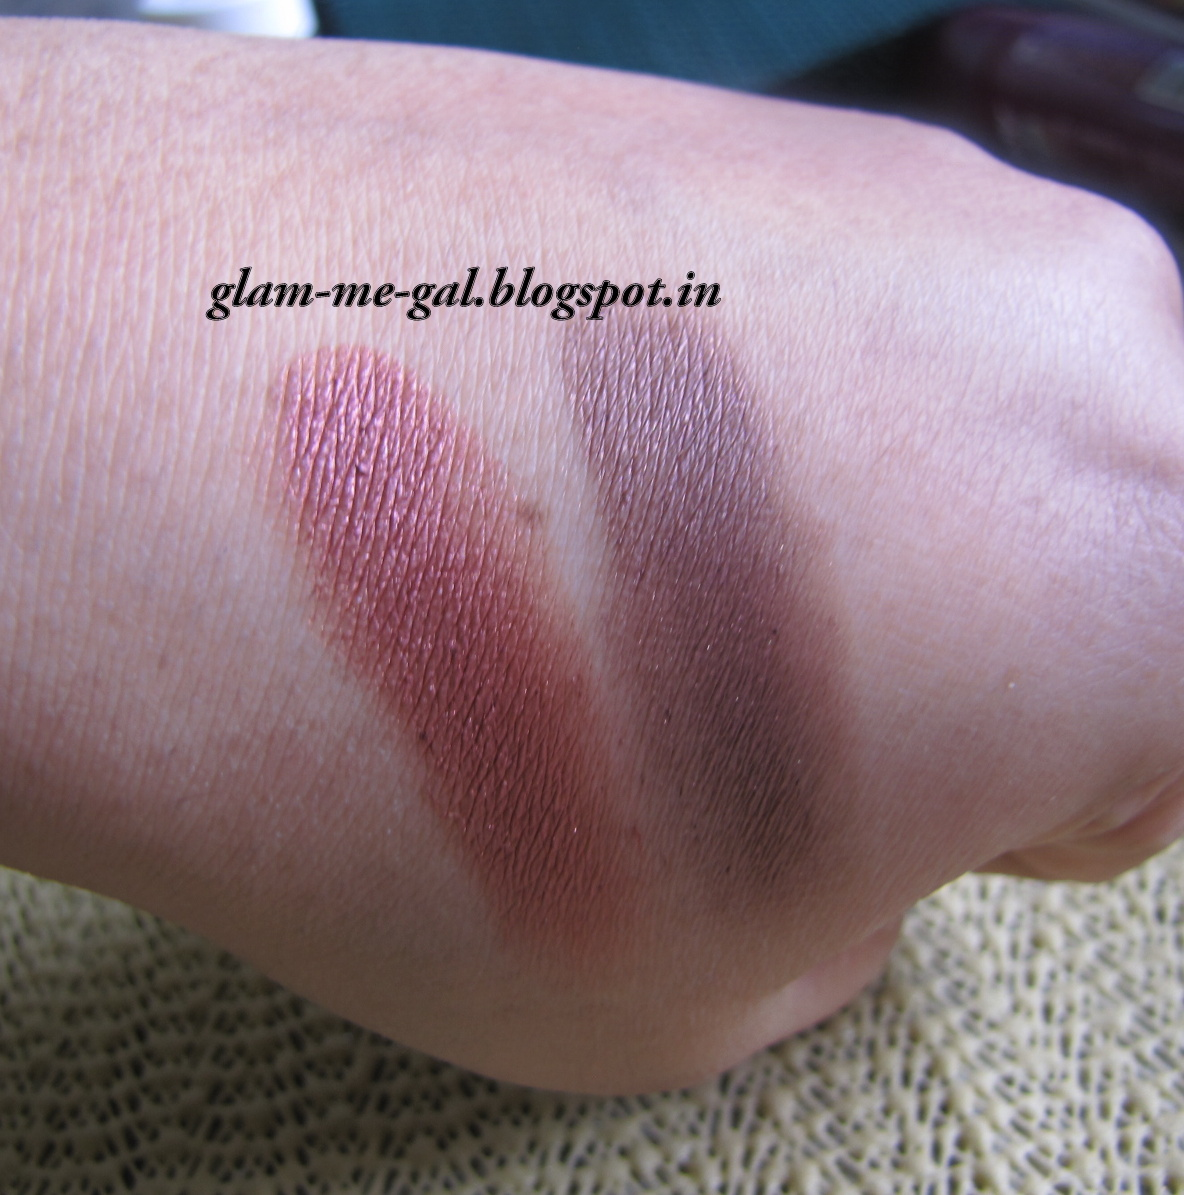 GLAM ME GAL: L'OREAL HIP EYESHADOW DUO IN CHEEKY REVIEW AND EOTD